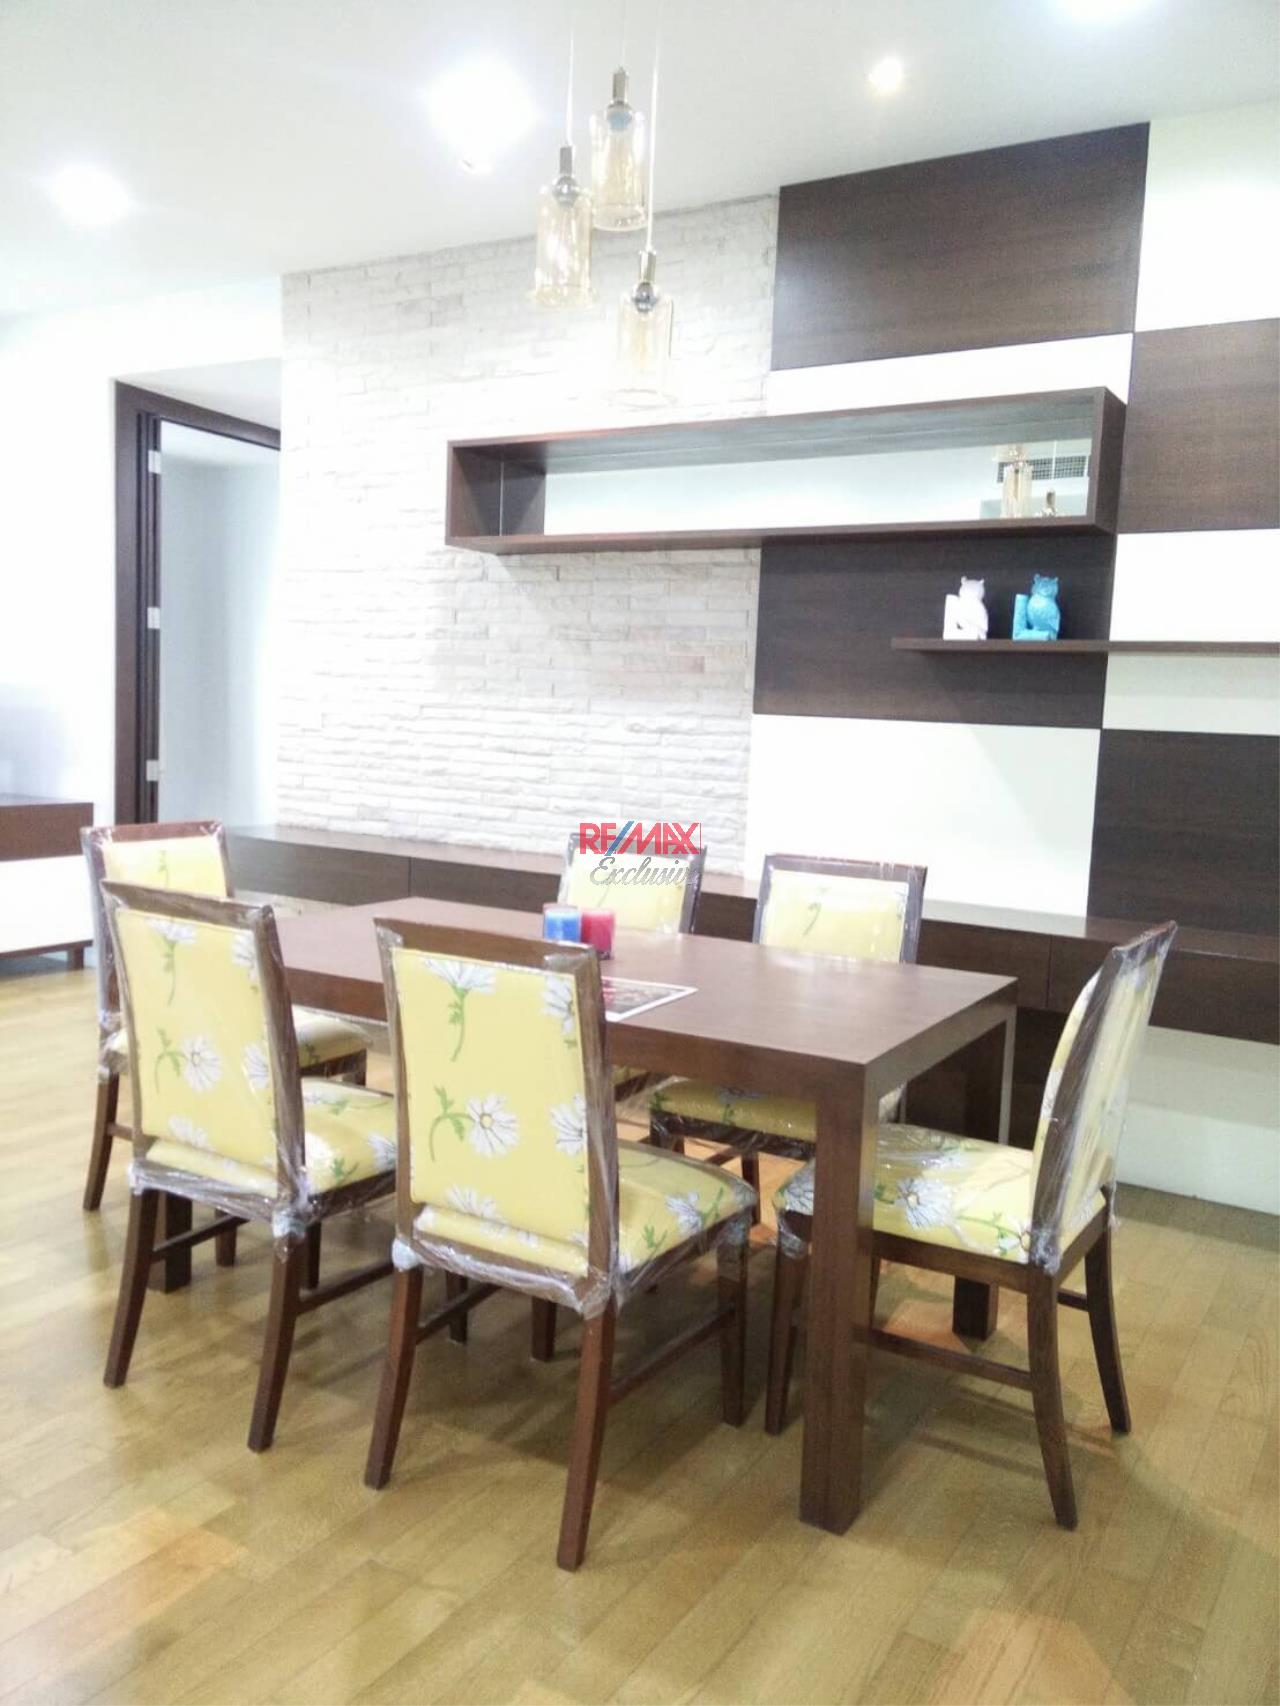 RE/MAX Exclusive Agency's The Madison Condo 2 Bedrooms 139 Sqm., For Sale With Tenant 24,000 000 THB!!  1